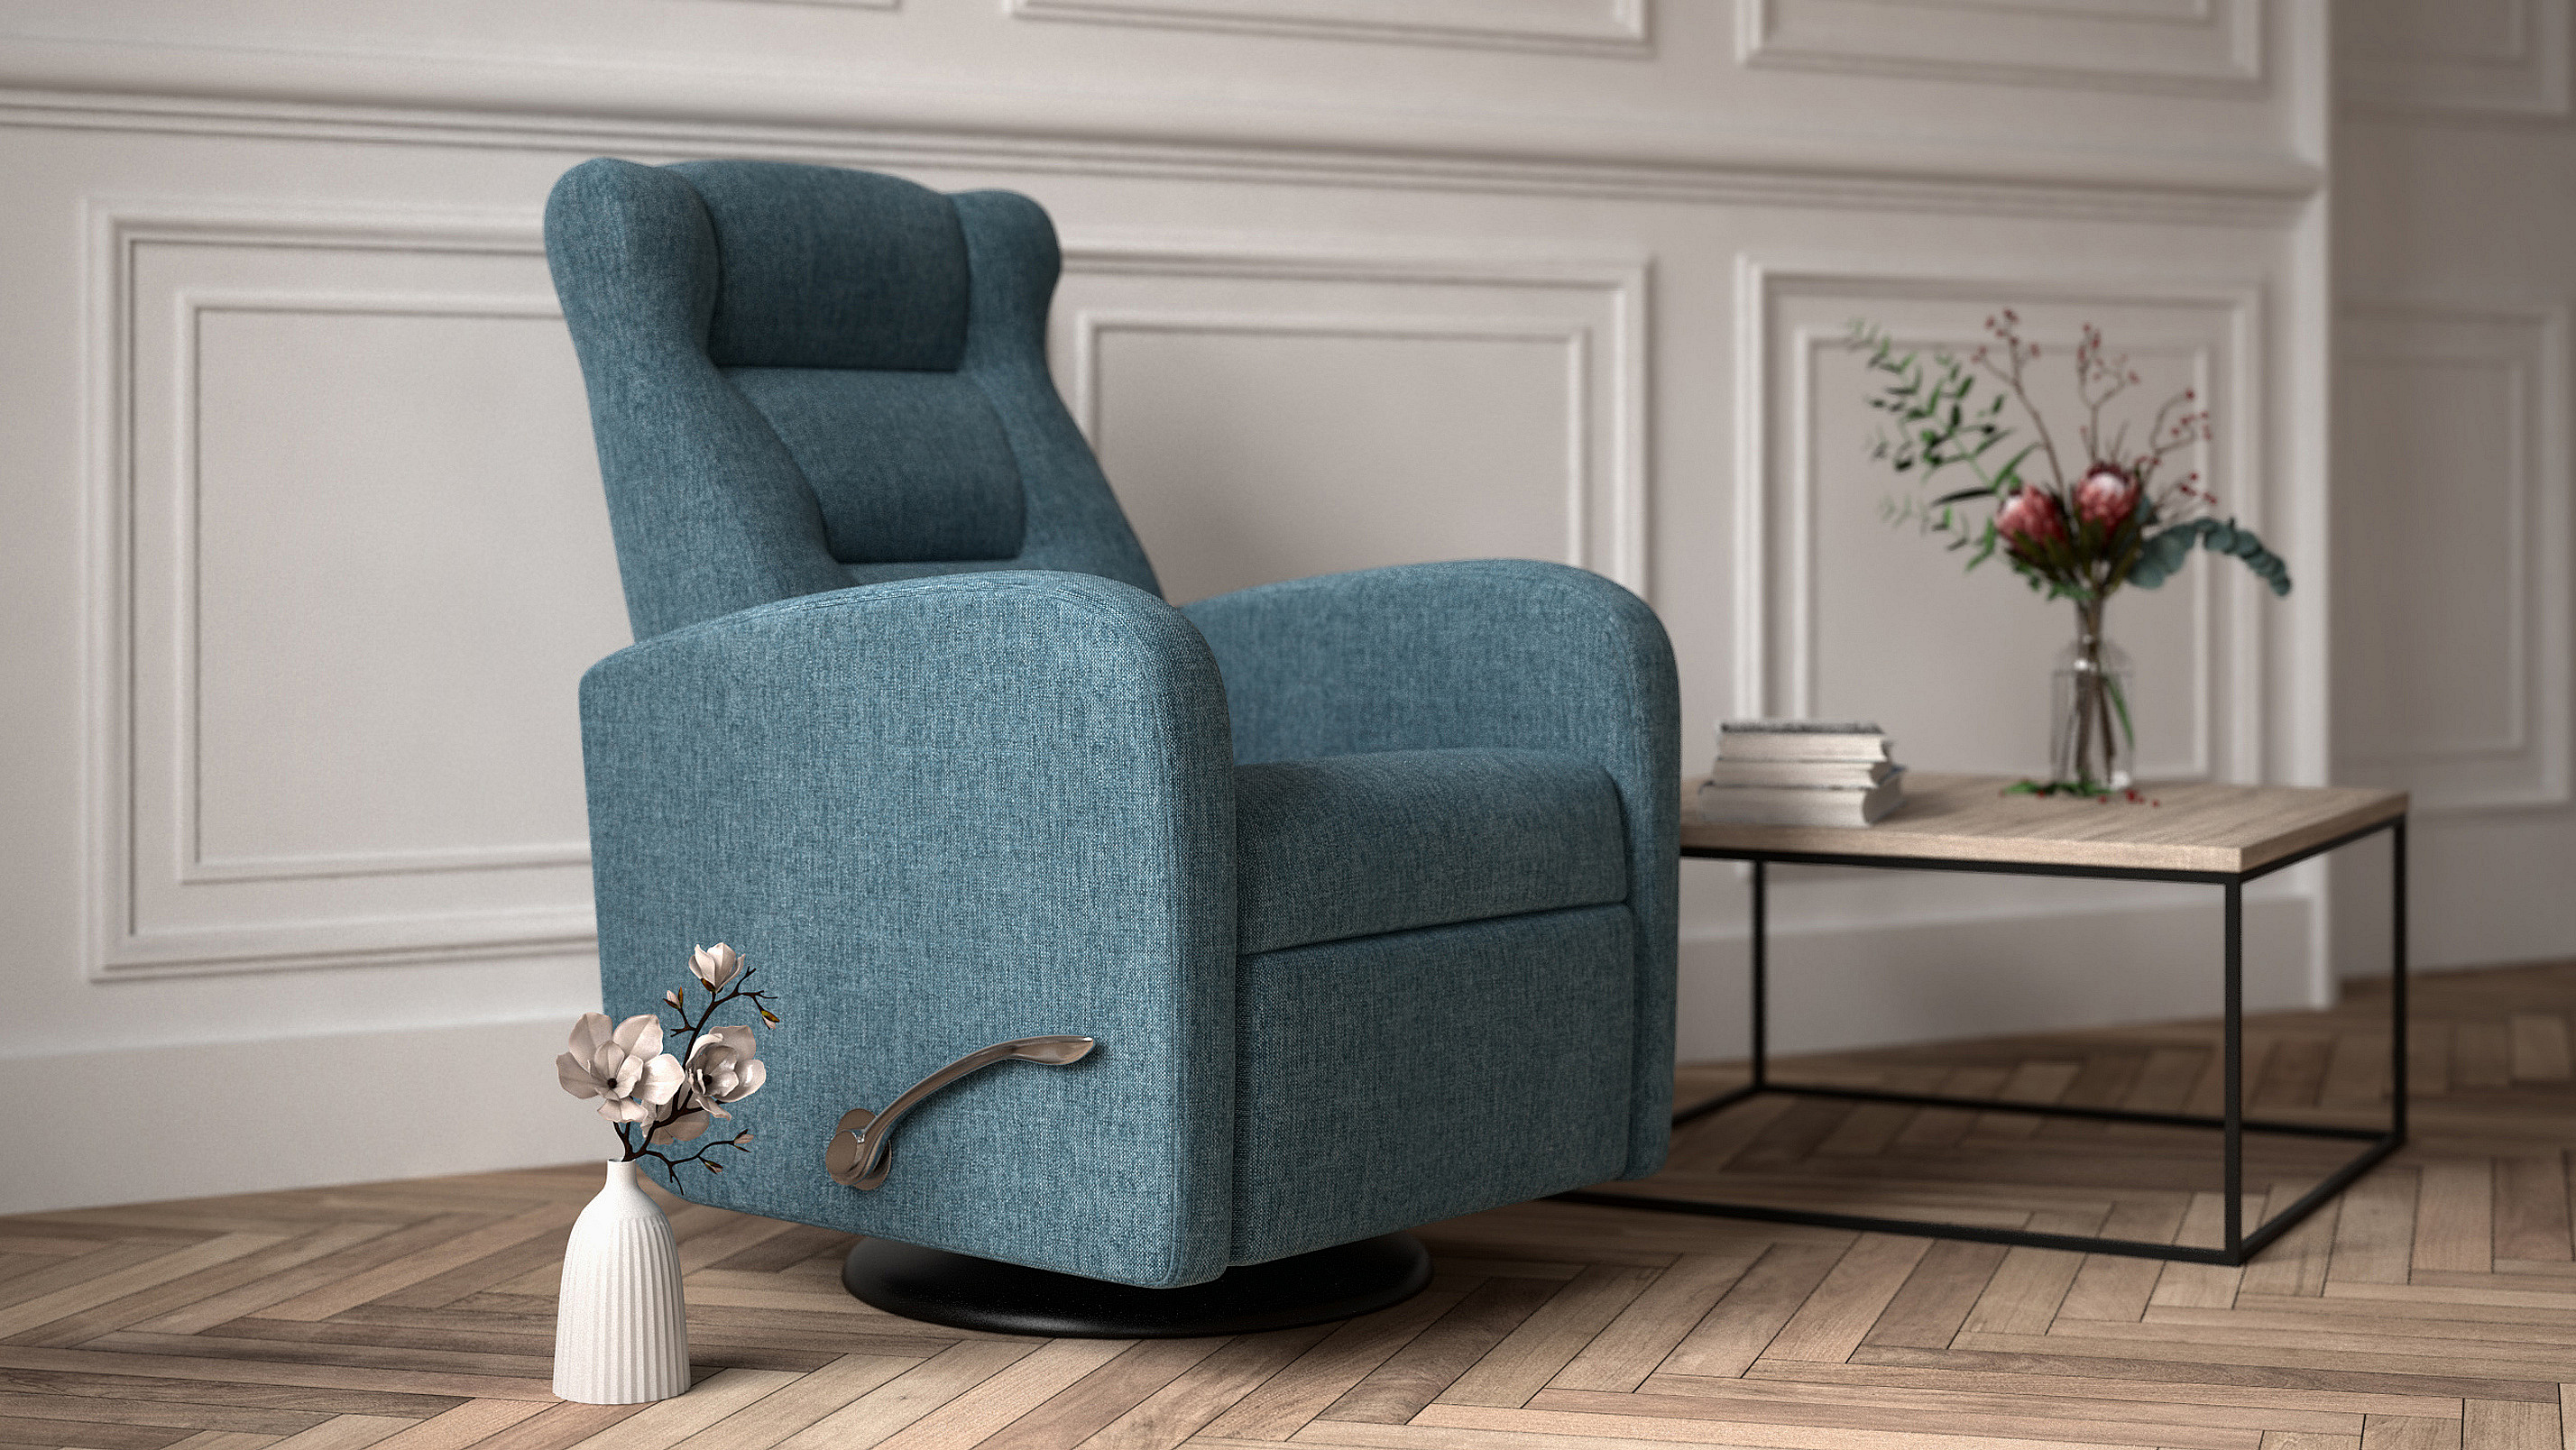 Ocean blue color recliner called Vitto.